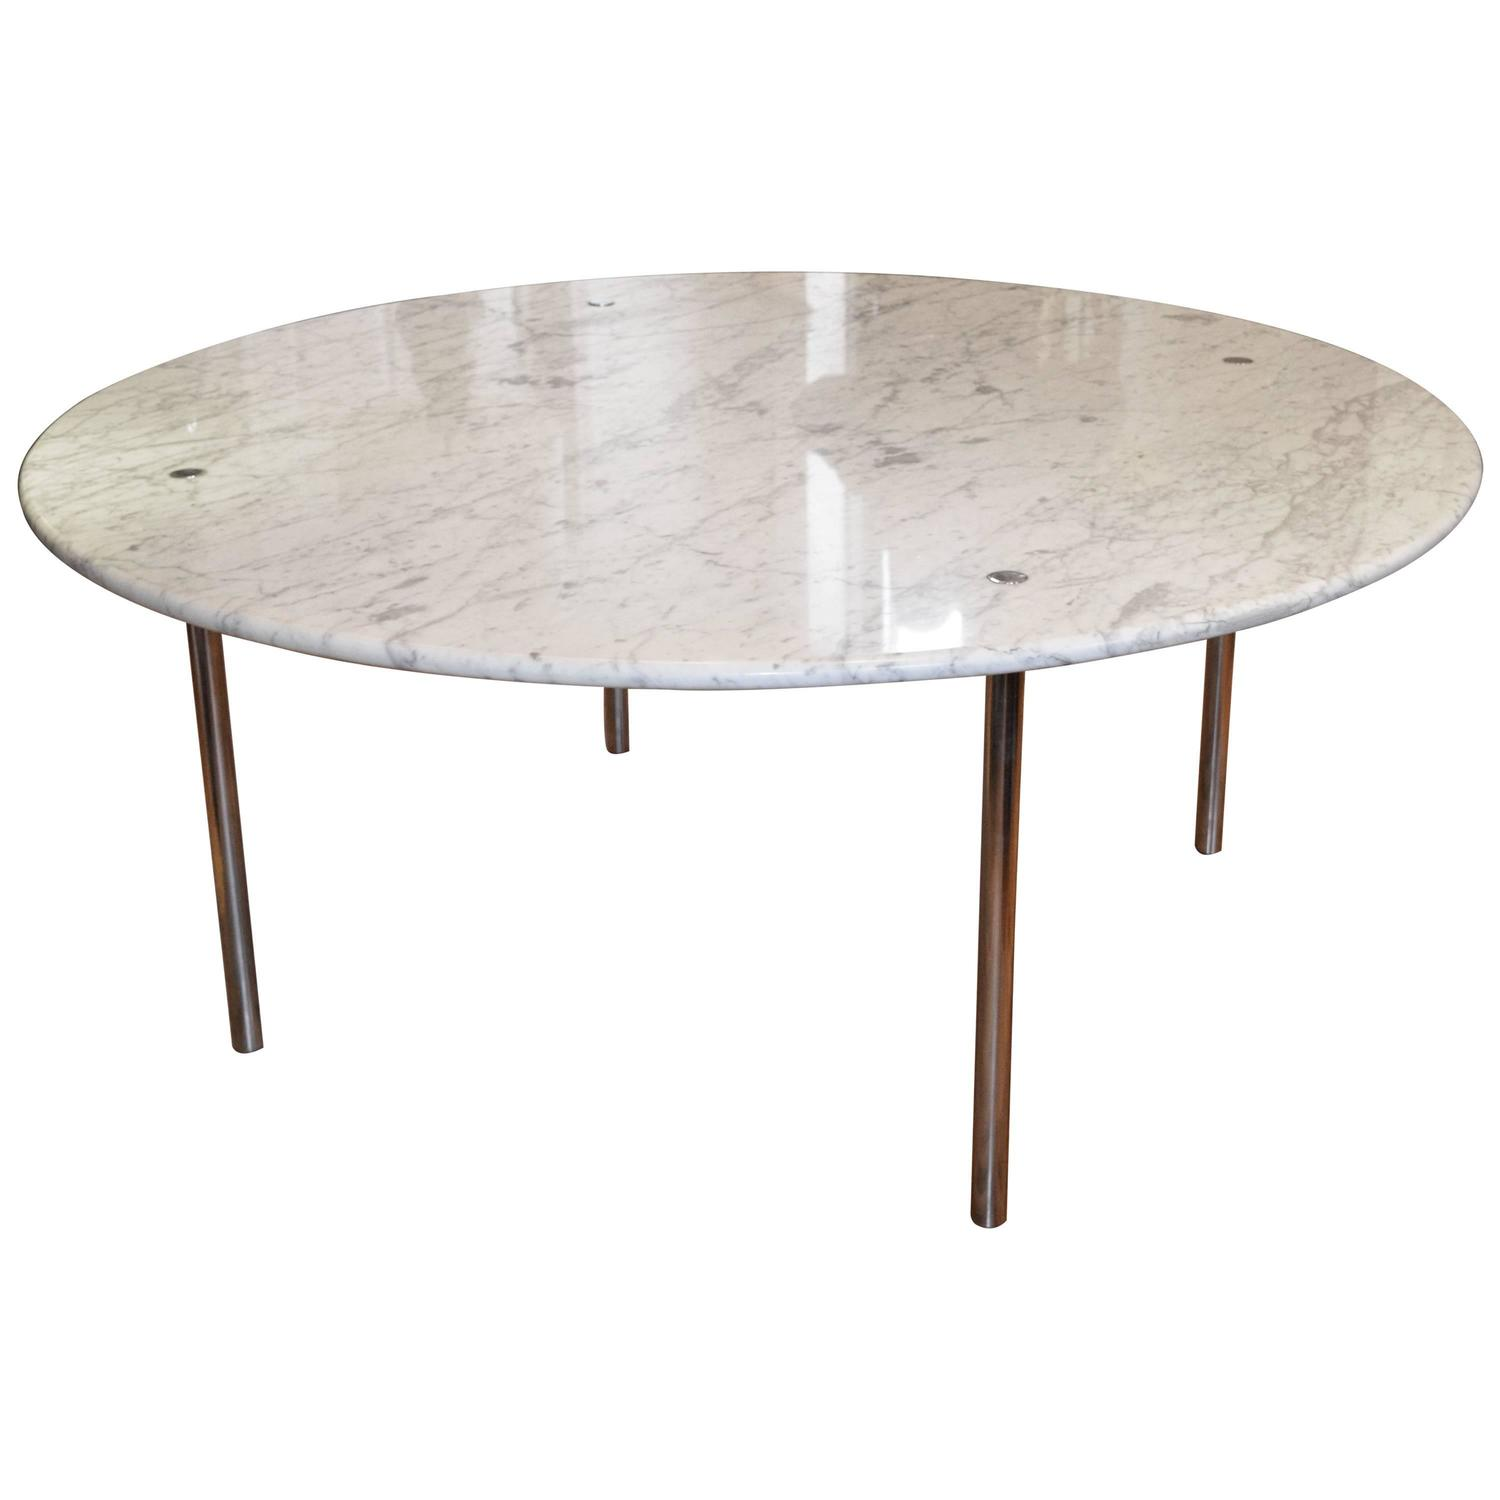 Monumental round marble dining table by katavolos littell and kelly for laverne at 1stdibs